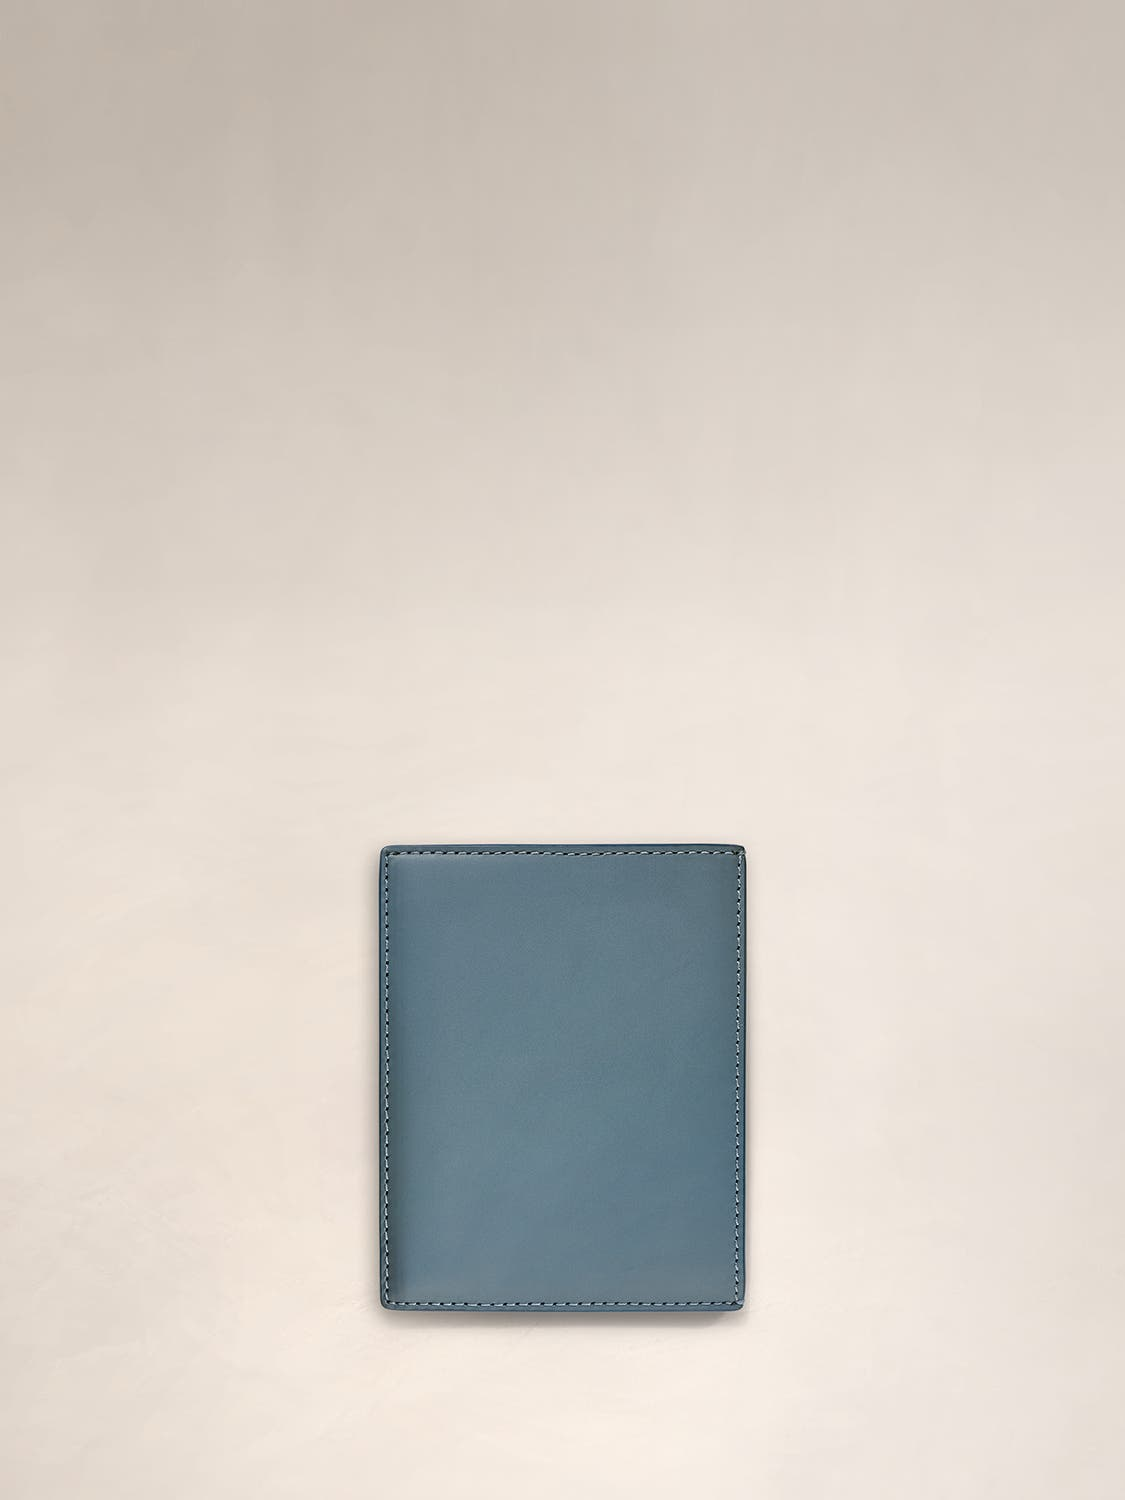 A front view of a coast passport holder.